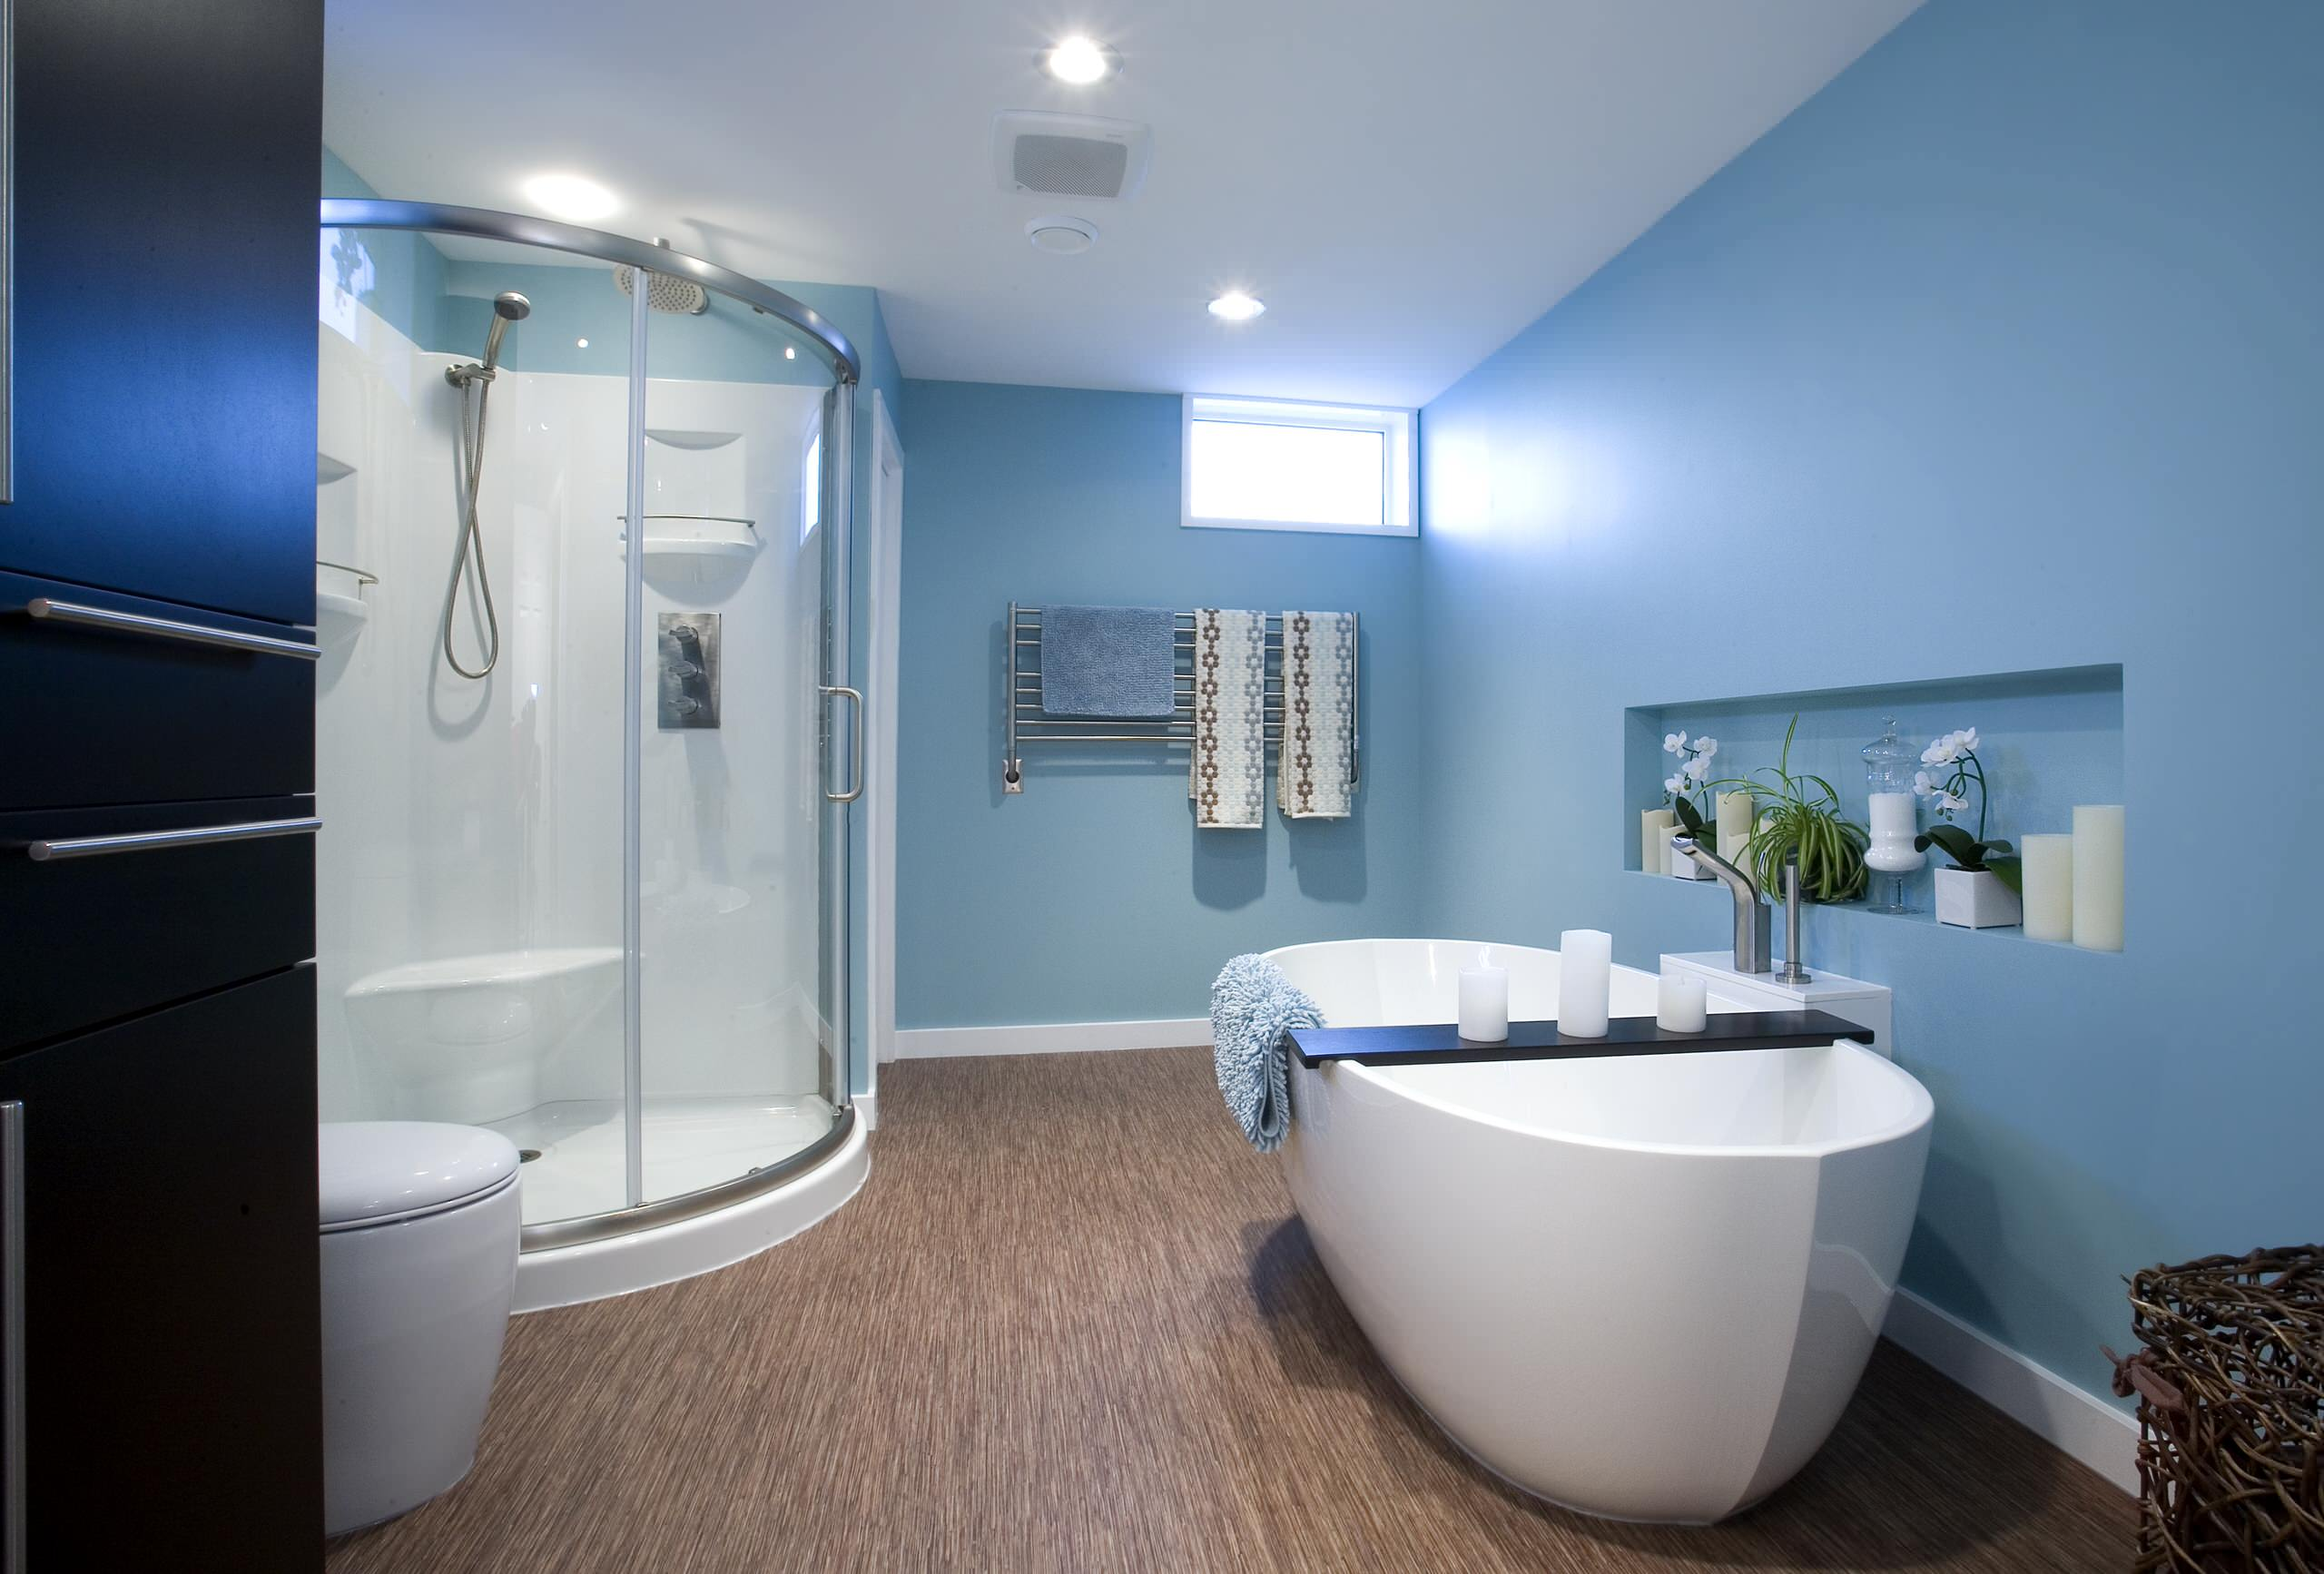 Bathroom: Marvellous Bathroom With Aquabrass And Free Standing Tub ...